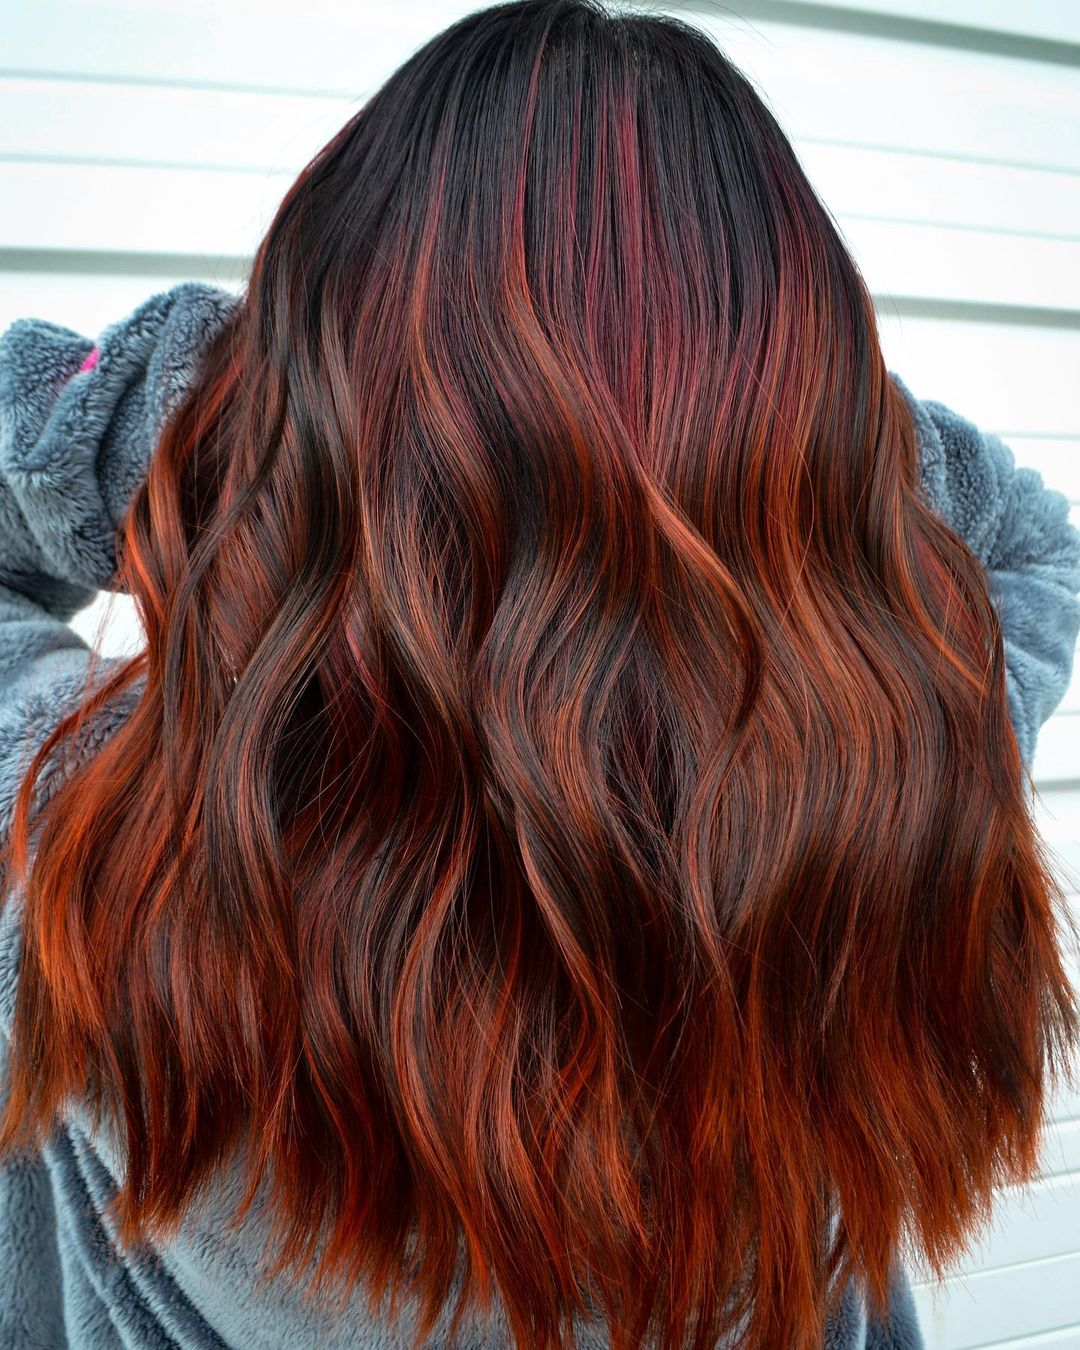 Dark Shadow Roots and Red Highlights